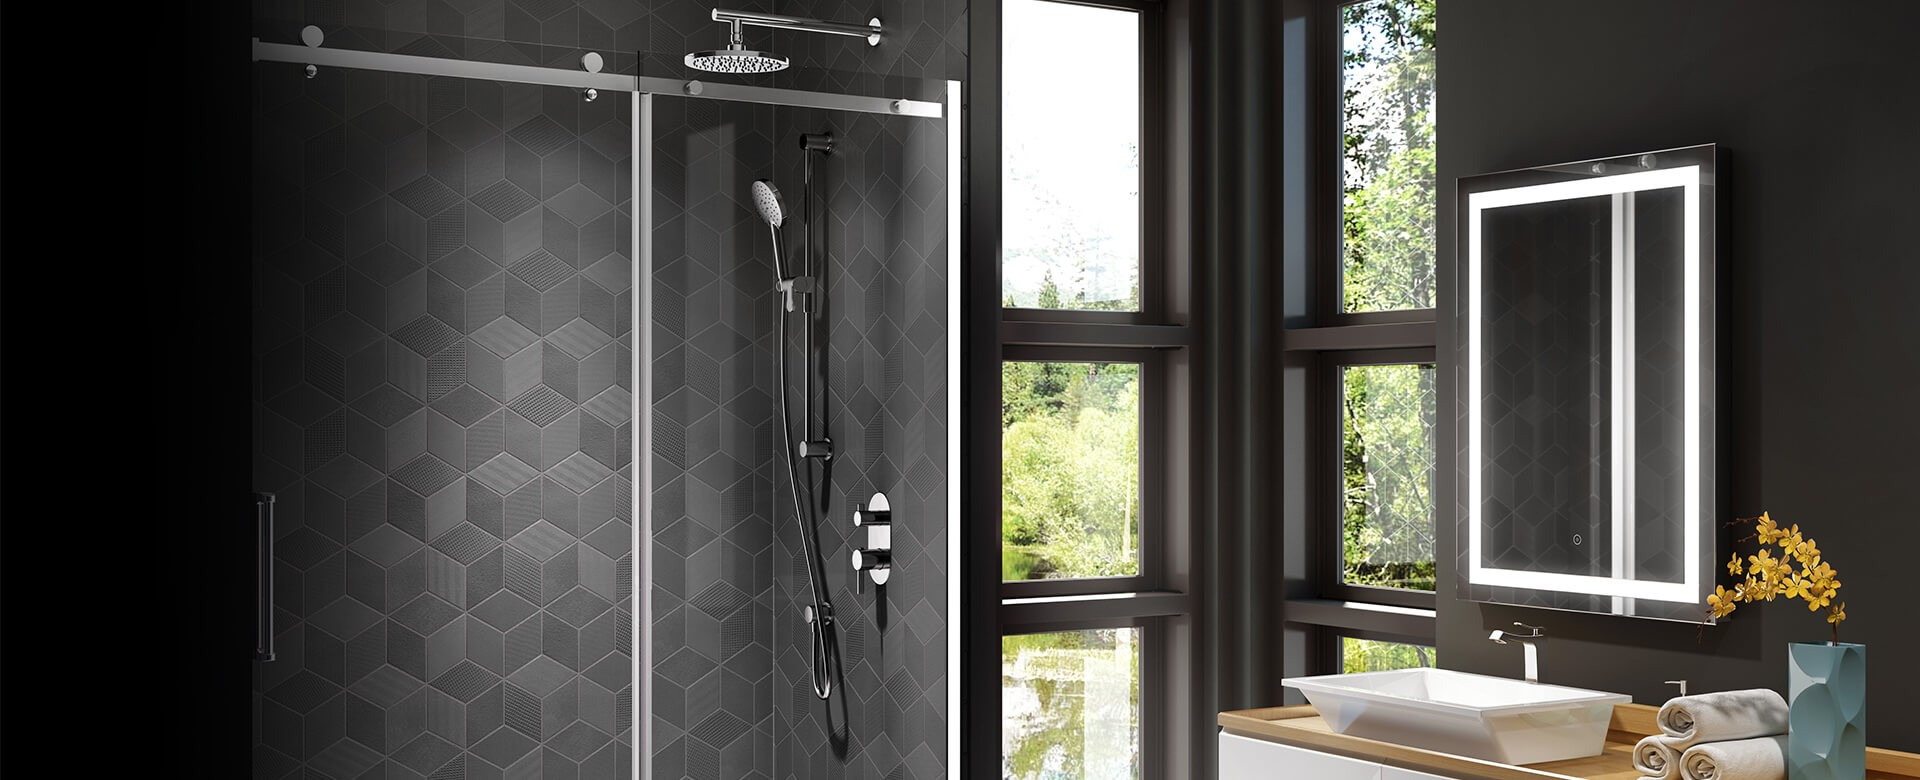 COLLECTION: PORTES DE DOUCHE ROLLAX